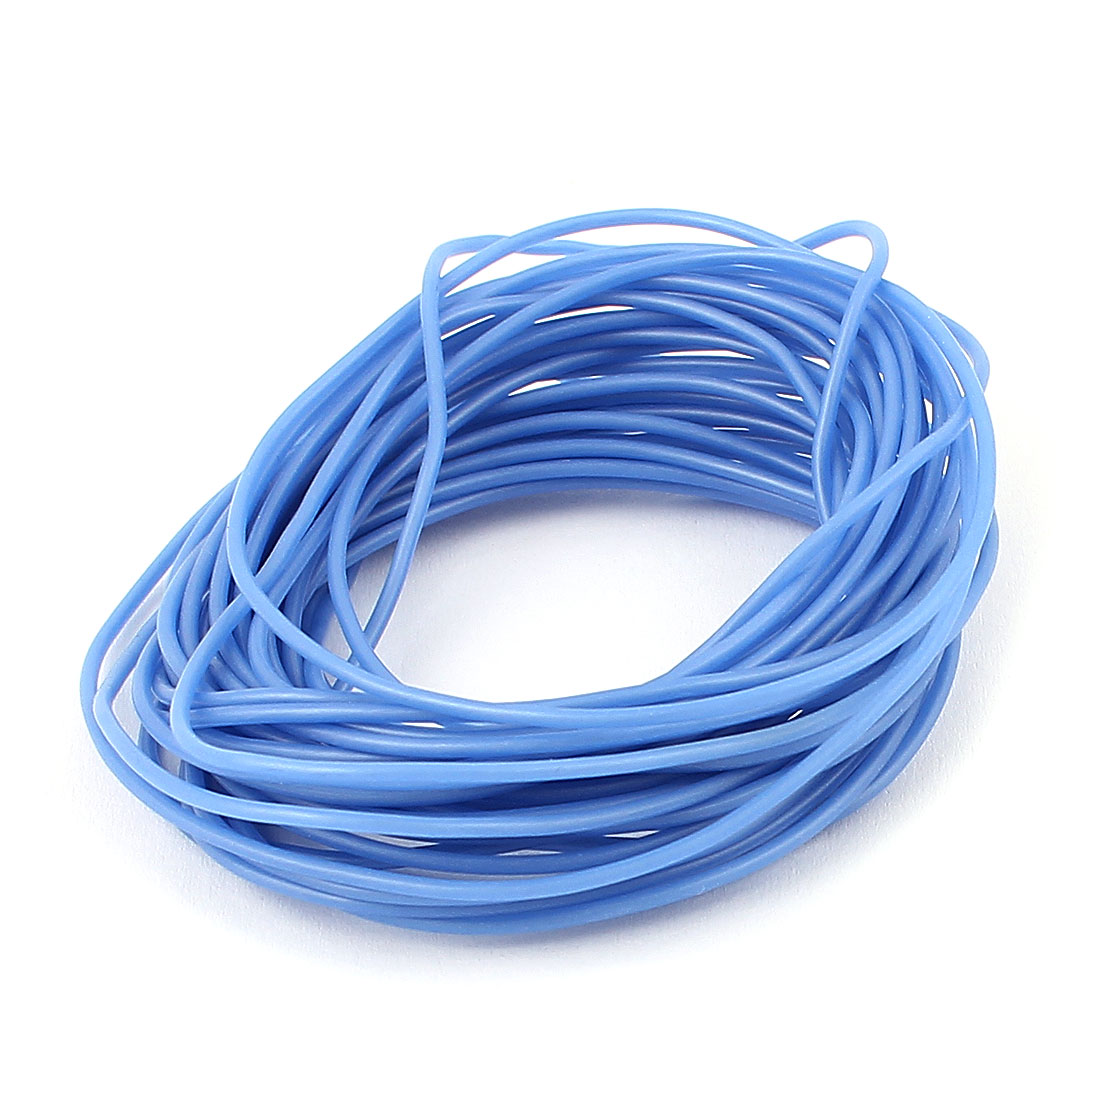 5M 28AWG Electric Copper Core Flexible Silicone Wire Cable Blue